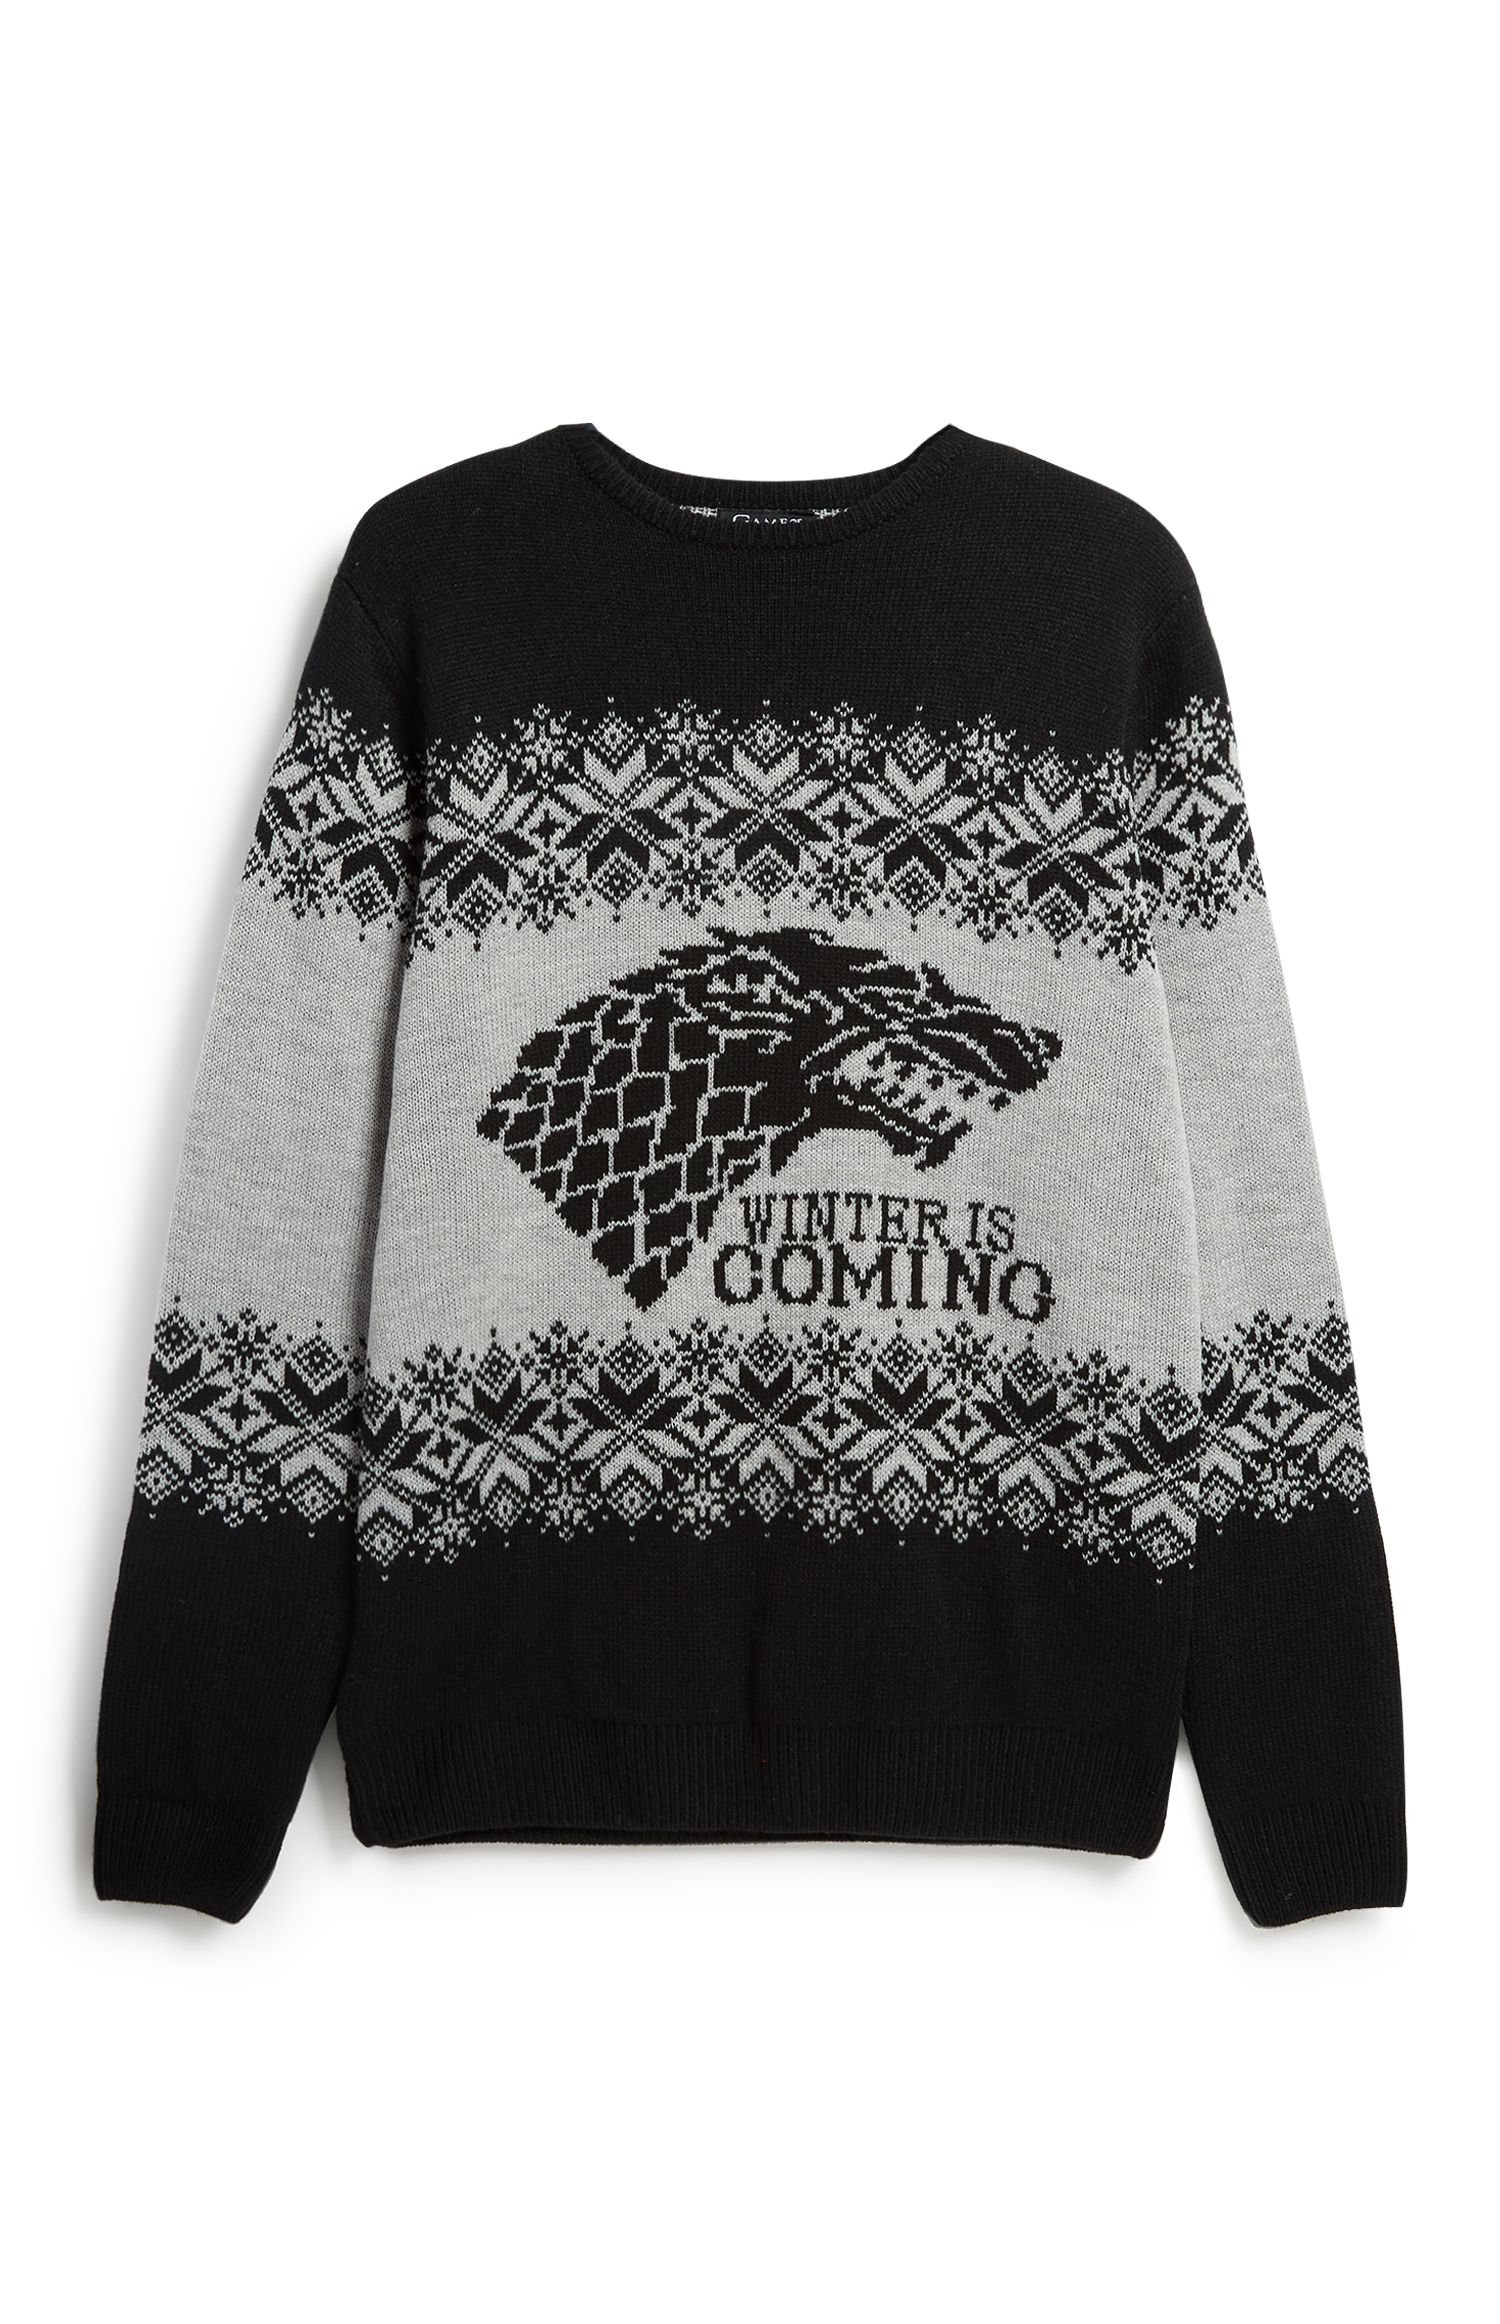 Primark Christmas jumpers